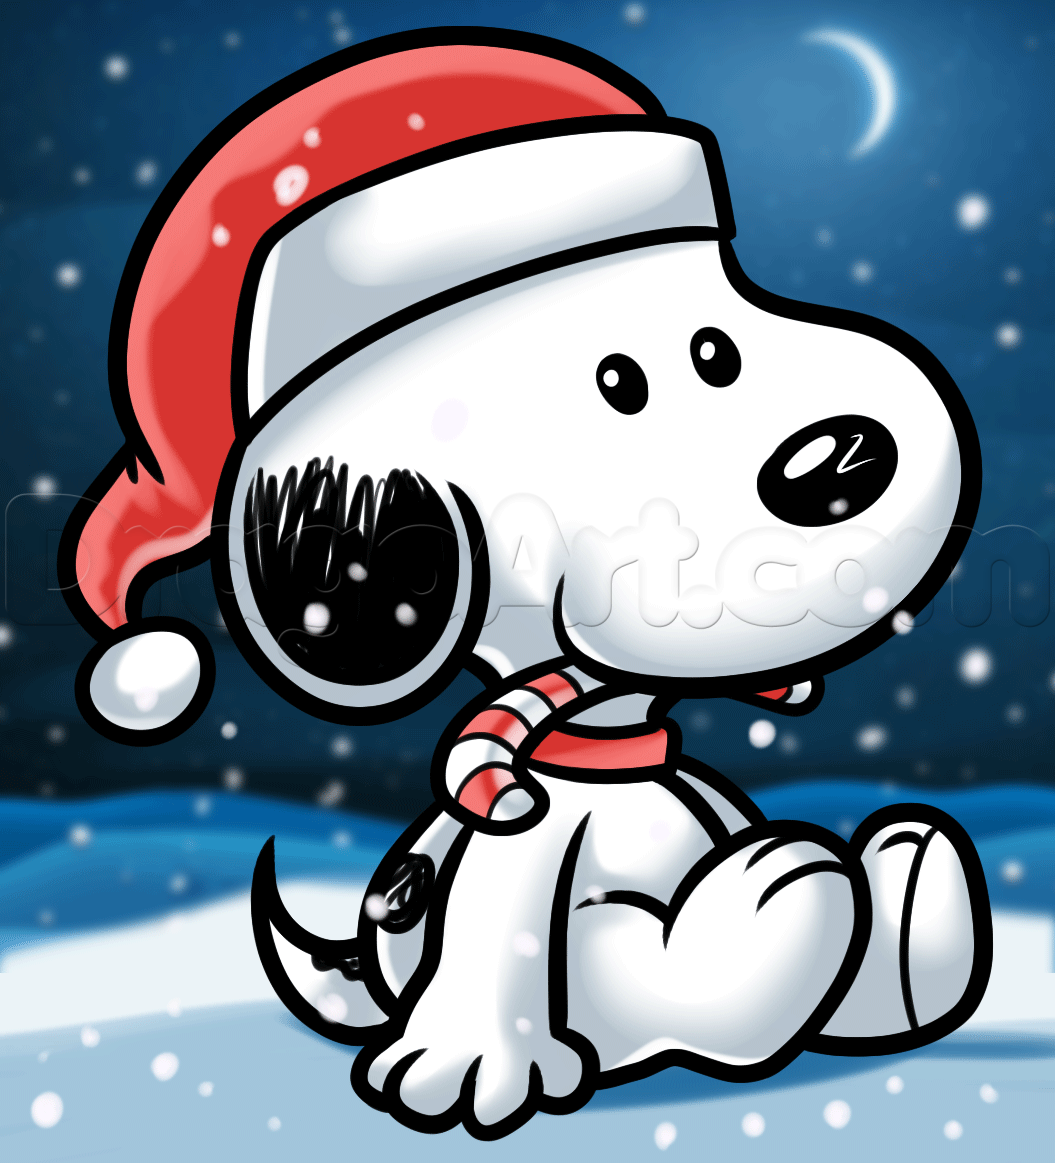 Nice wallpapers Snoopy 1055x1163px